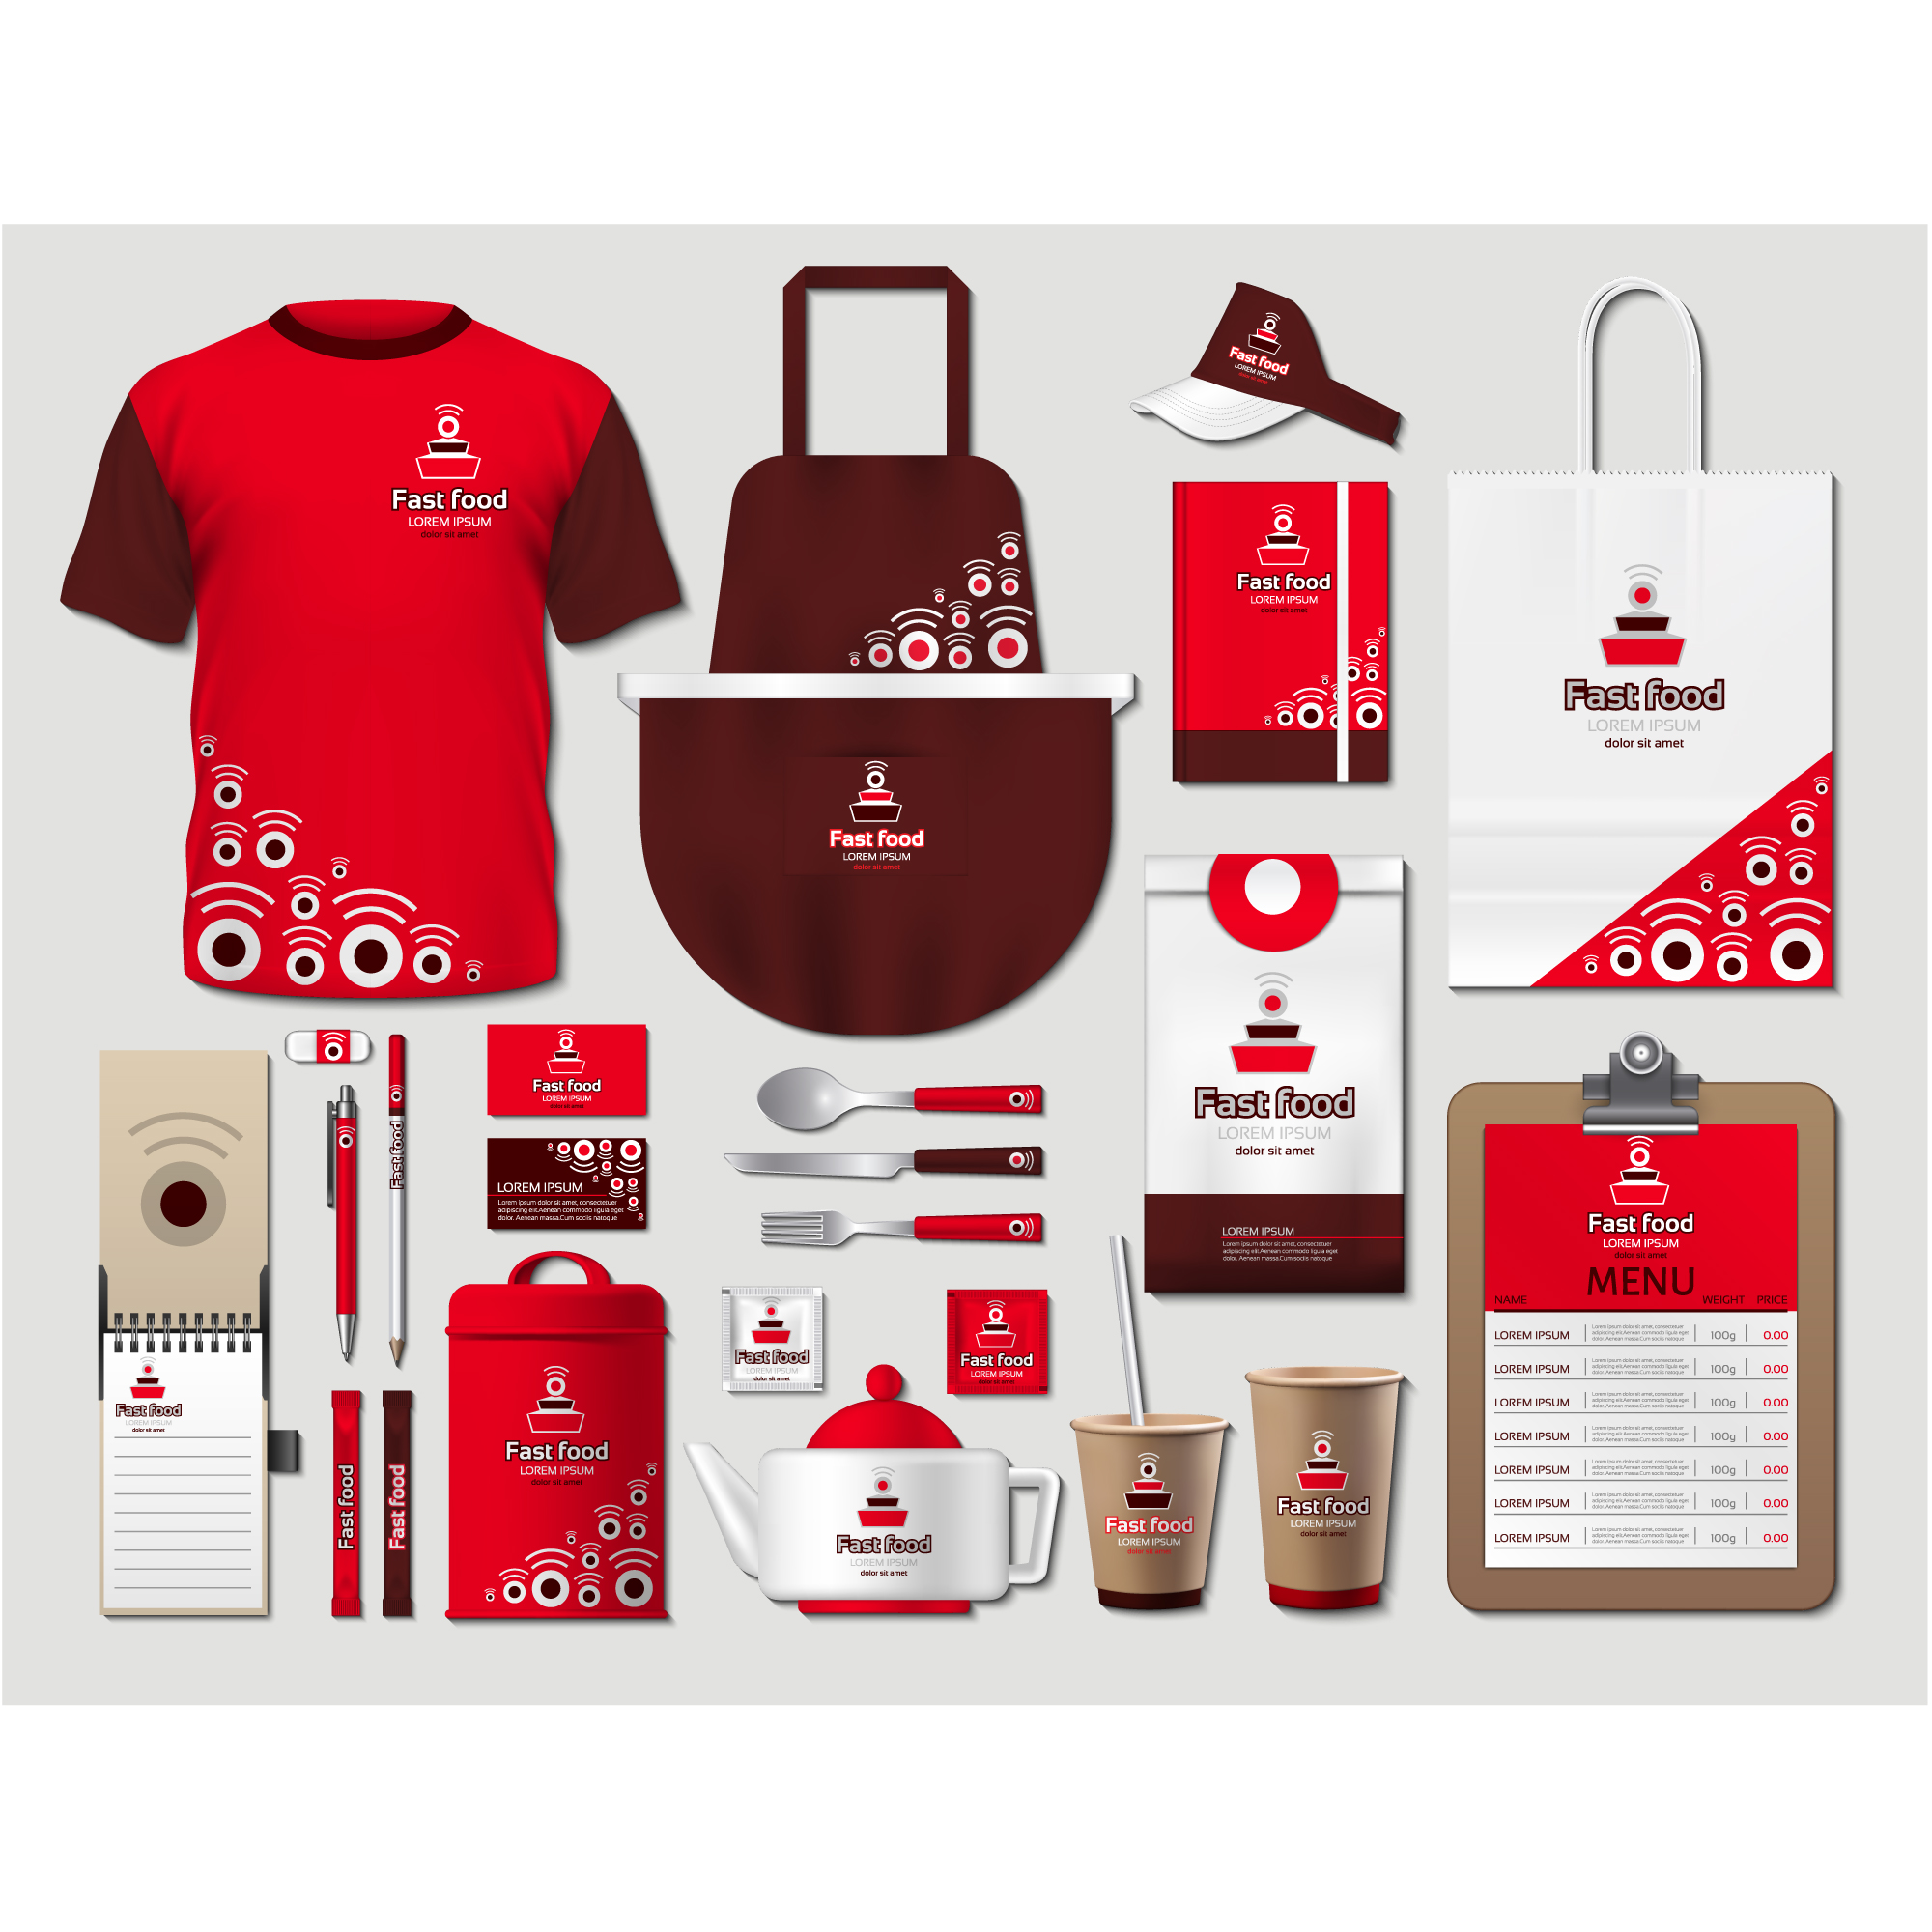 Coffee shop stationery with red design